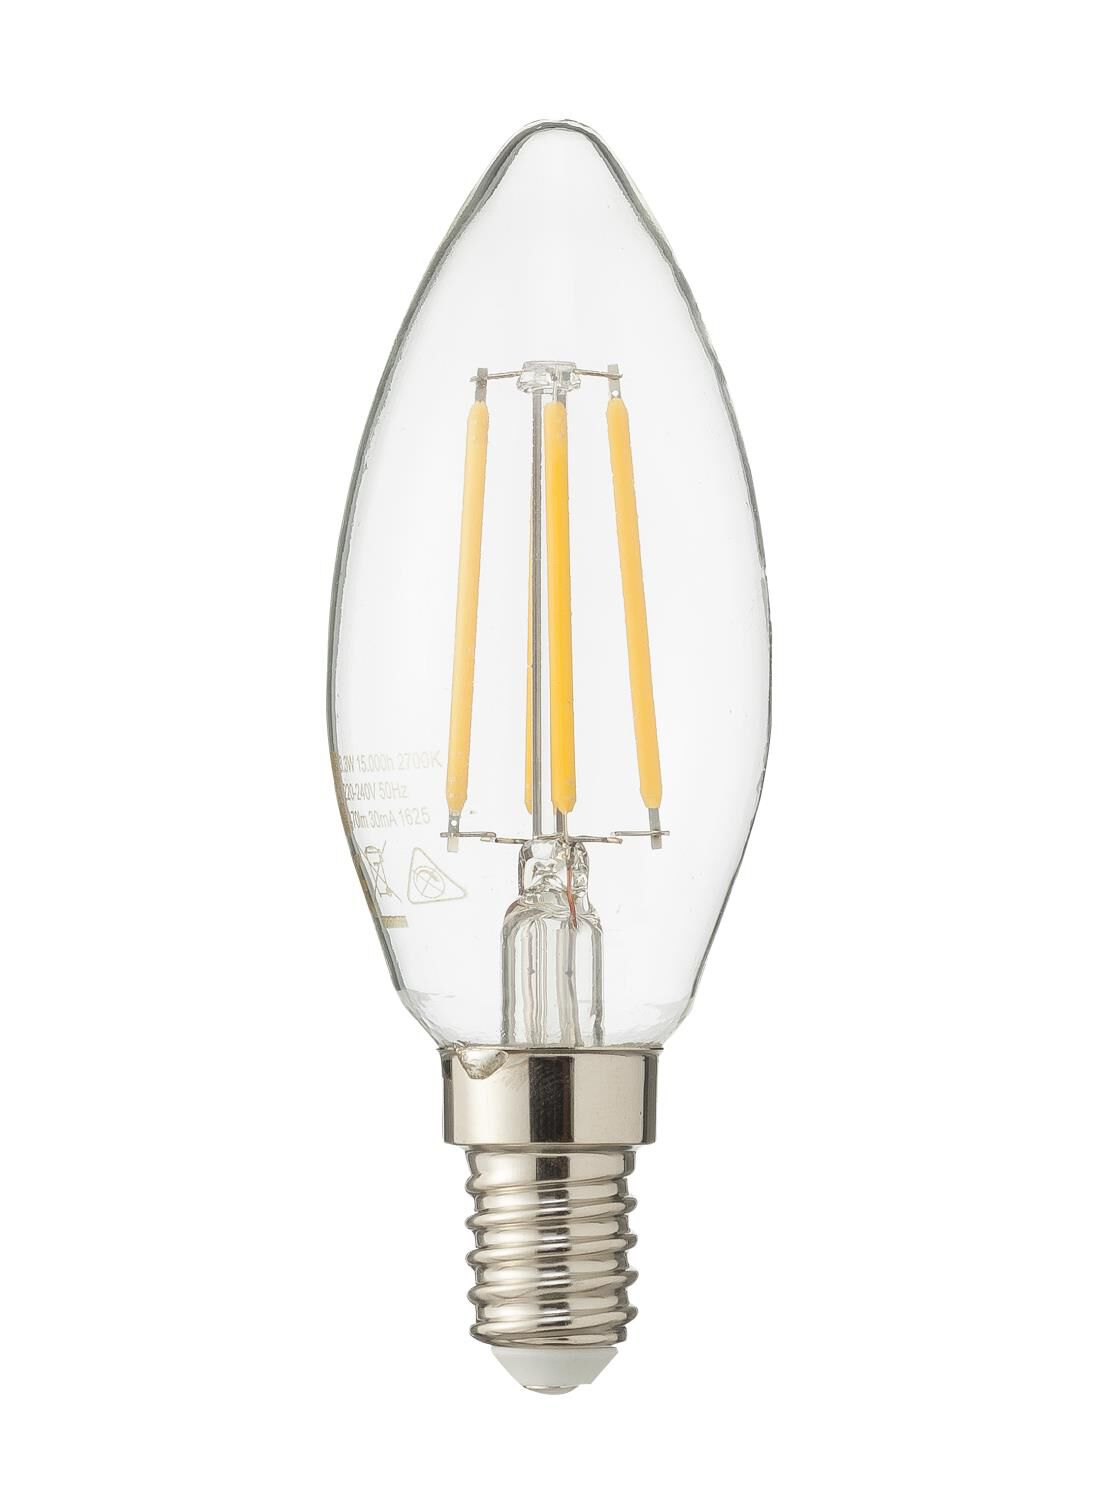 hema led lamp 25 watt